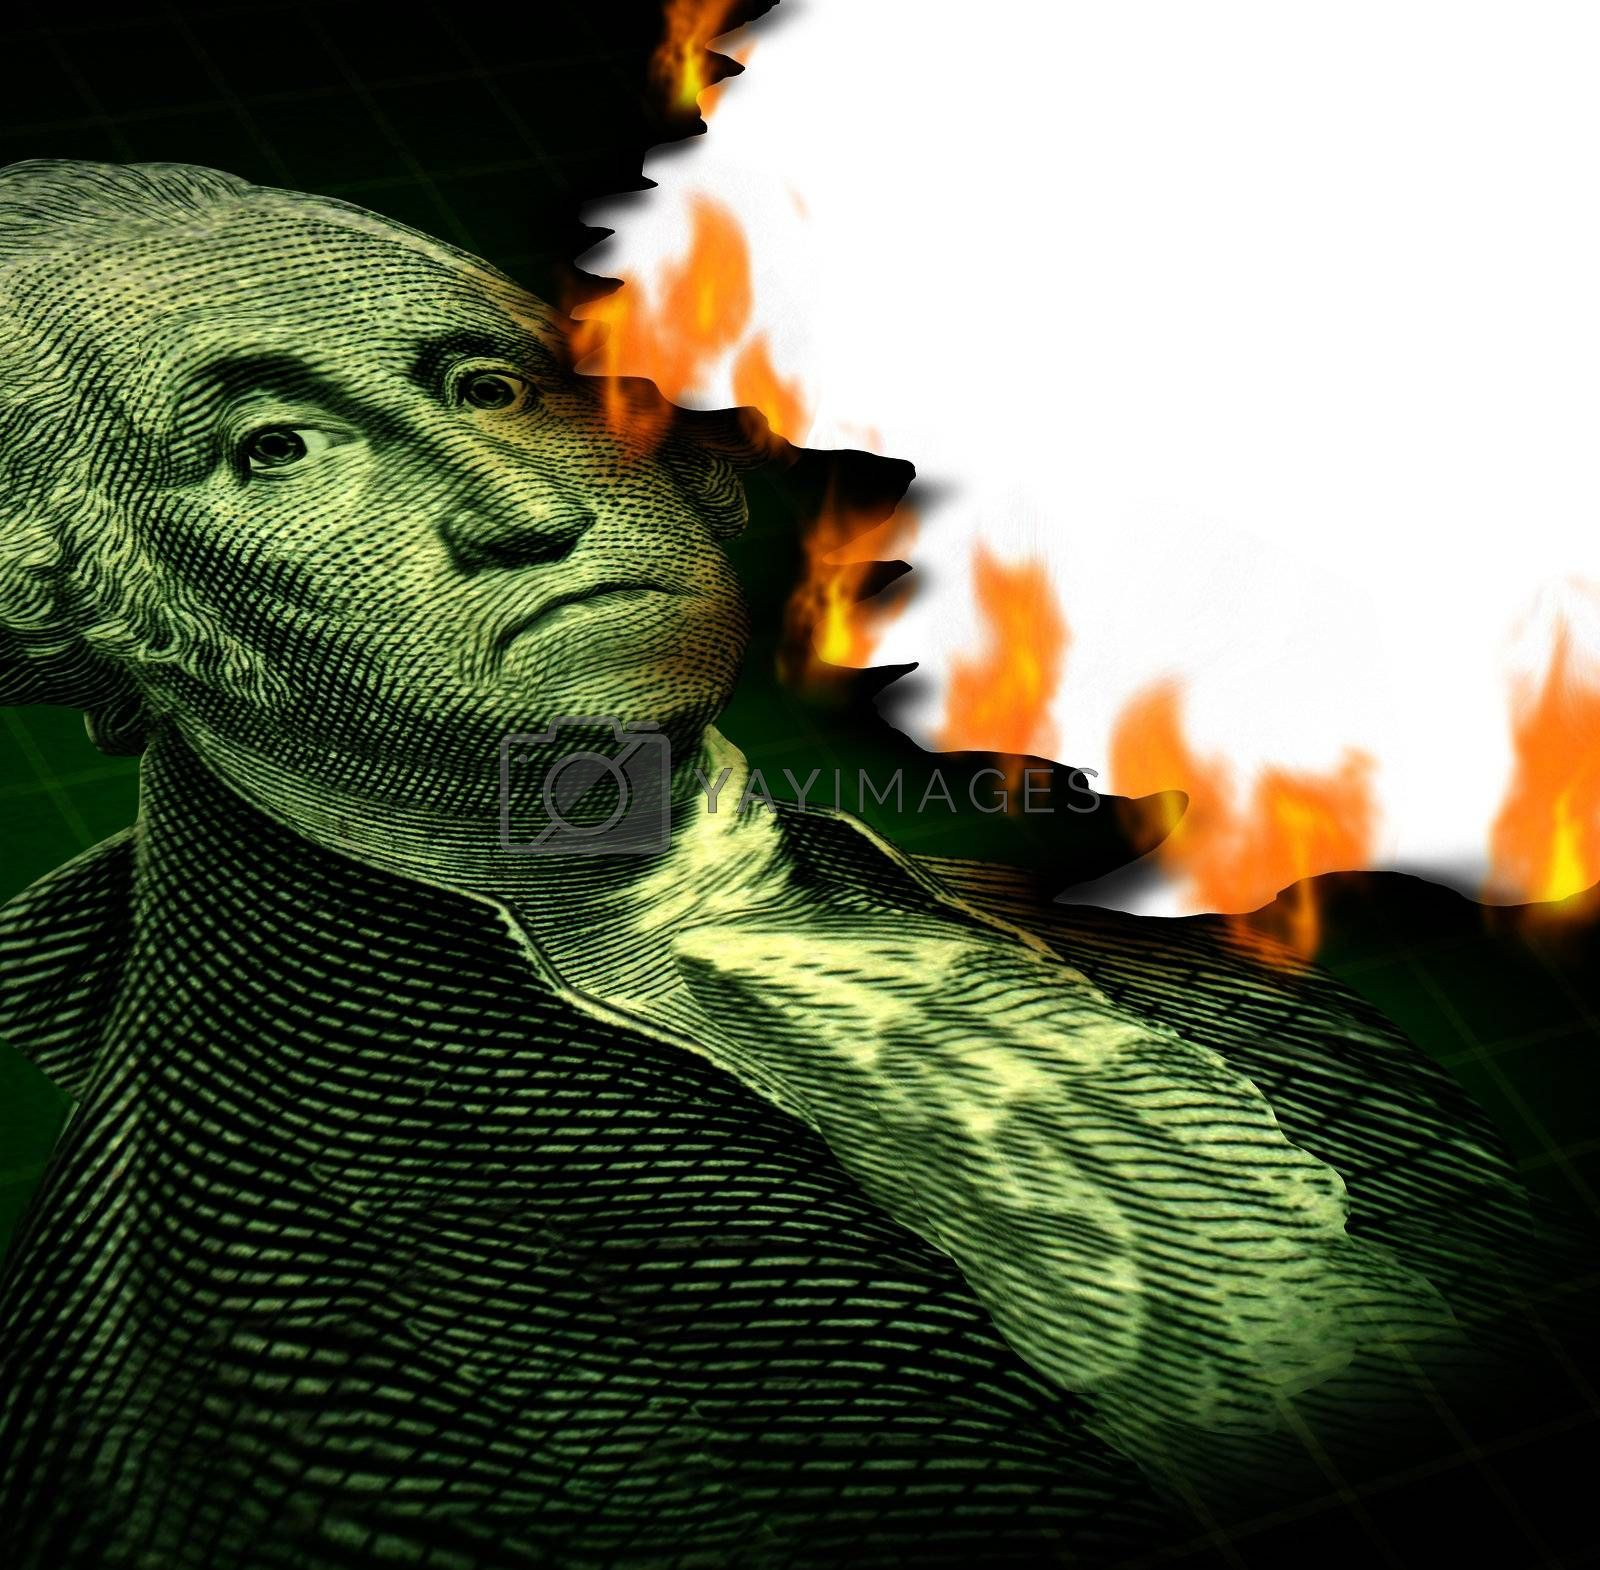 Losing your investment and financial debt crisis concept with a paper currency icon of George Washington and flames burning the paper as a symbol of declining wealth and finance despair.